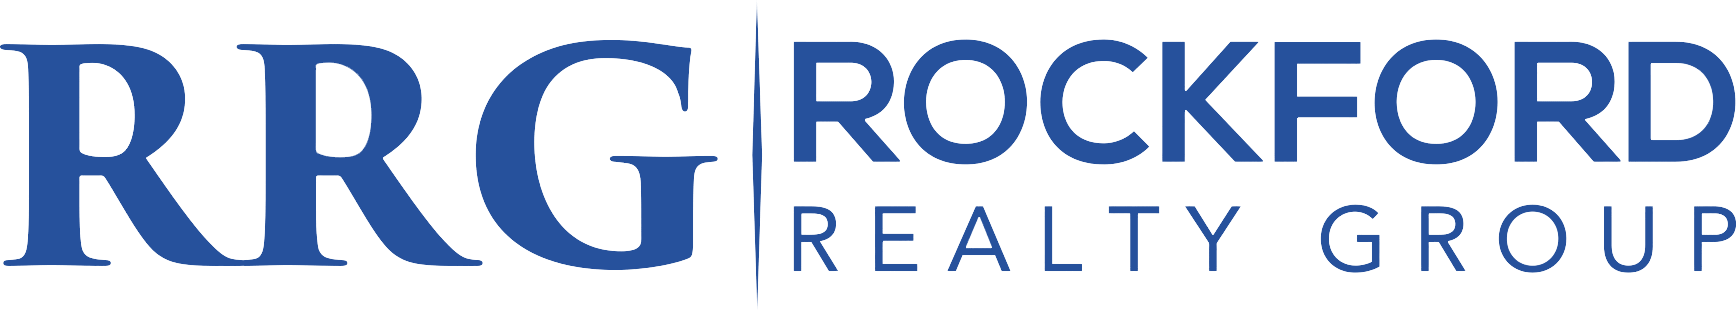 Rockford Realty Group